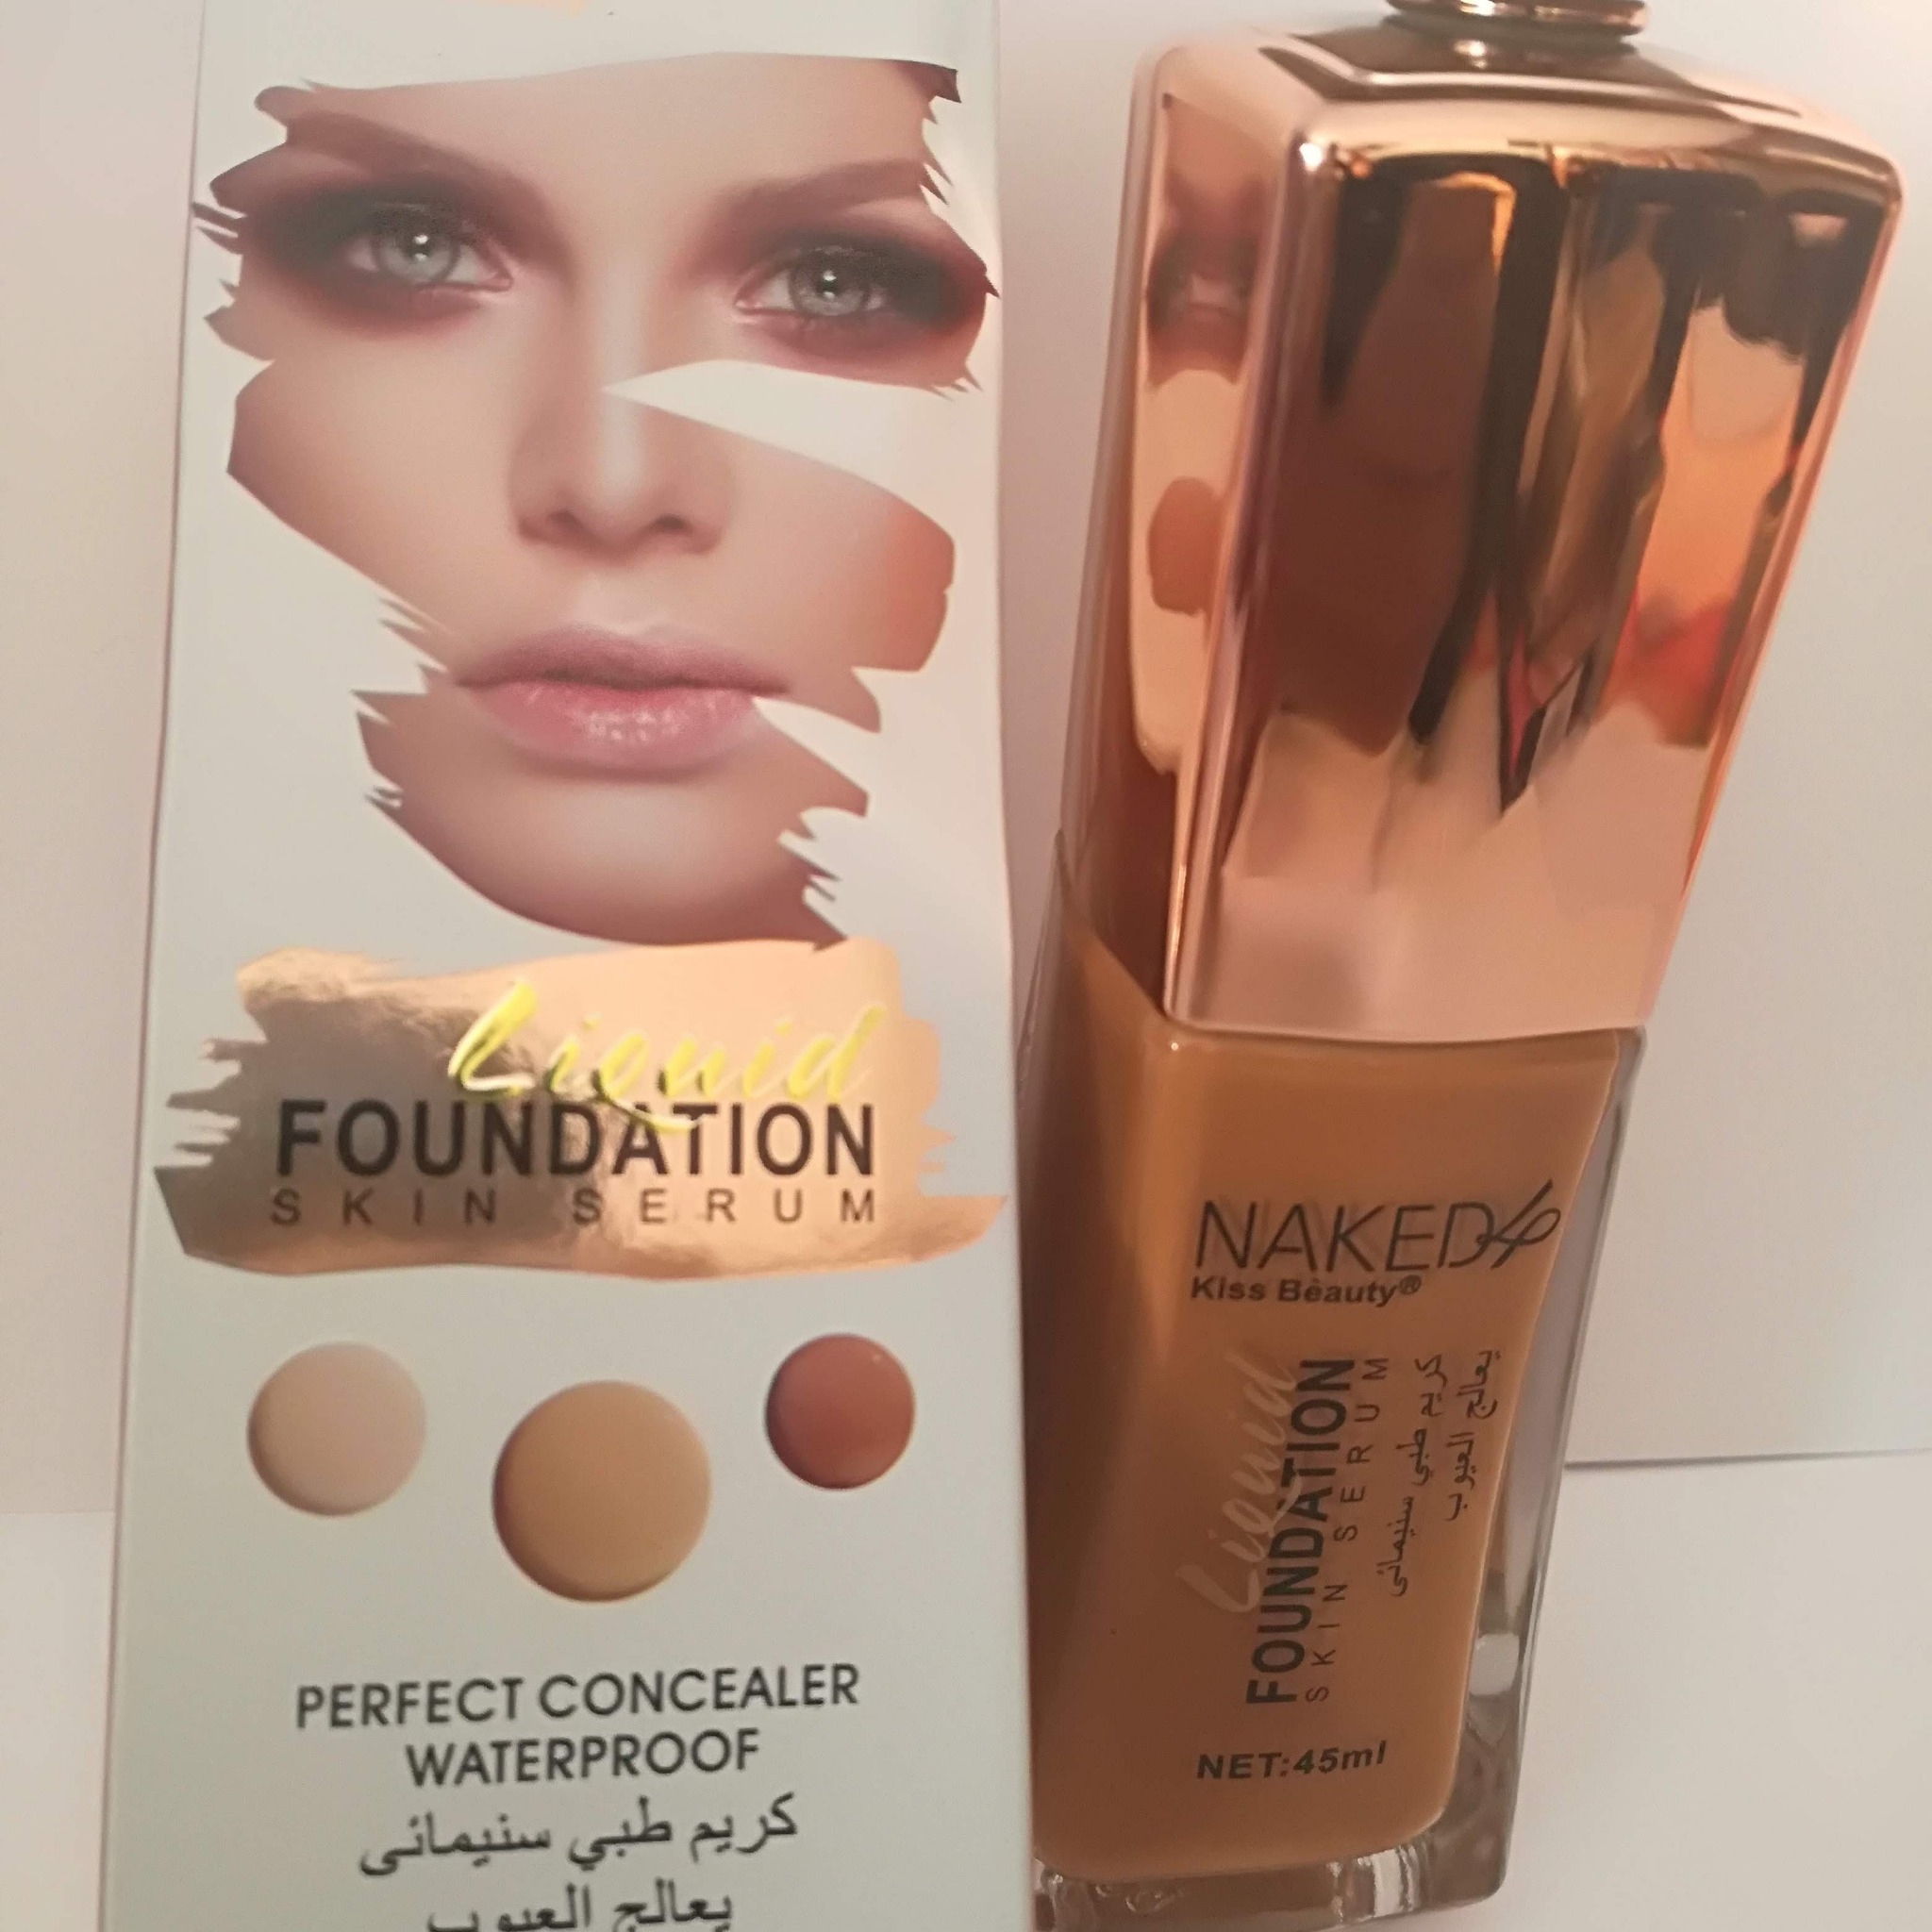 Naked & Kiss Beauty liquide Fondation